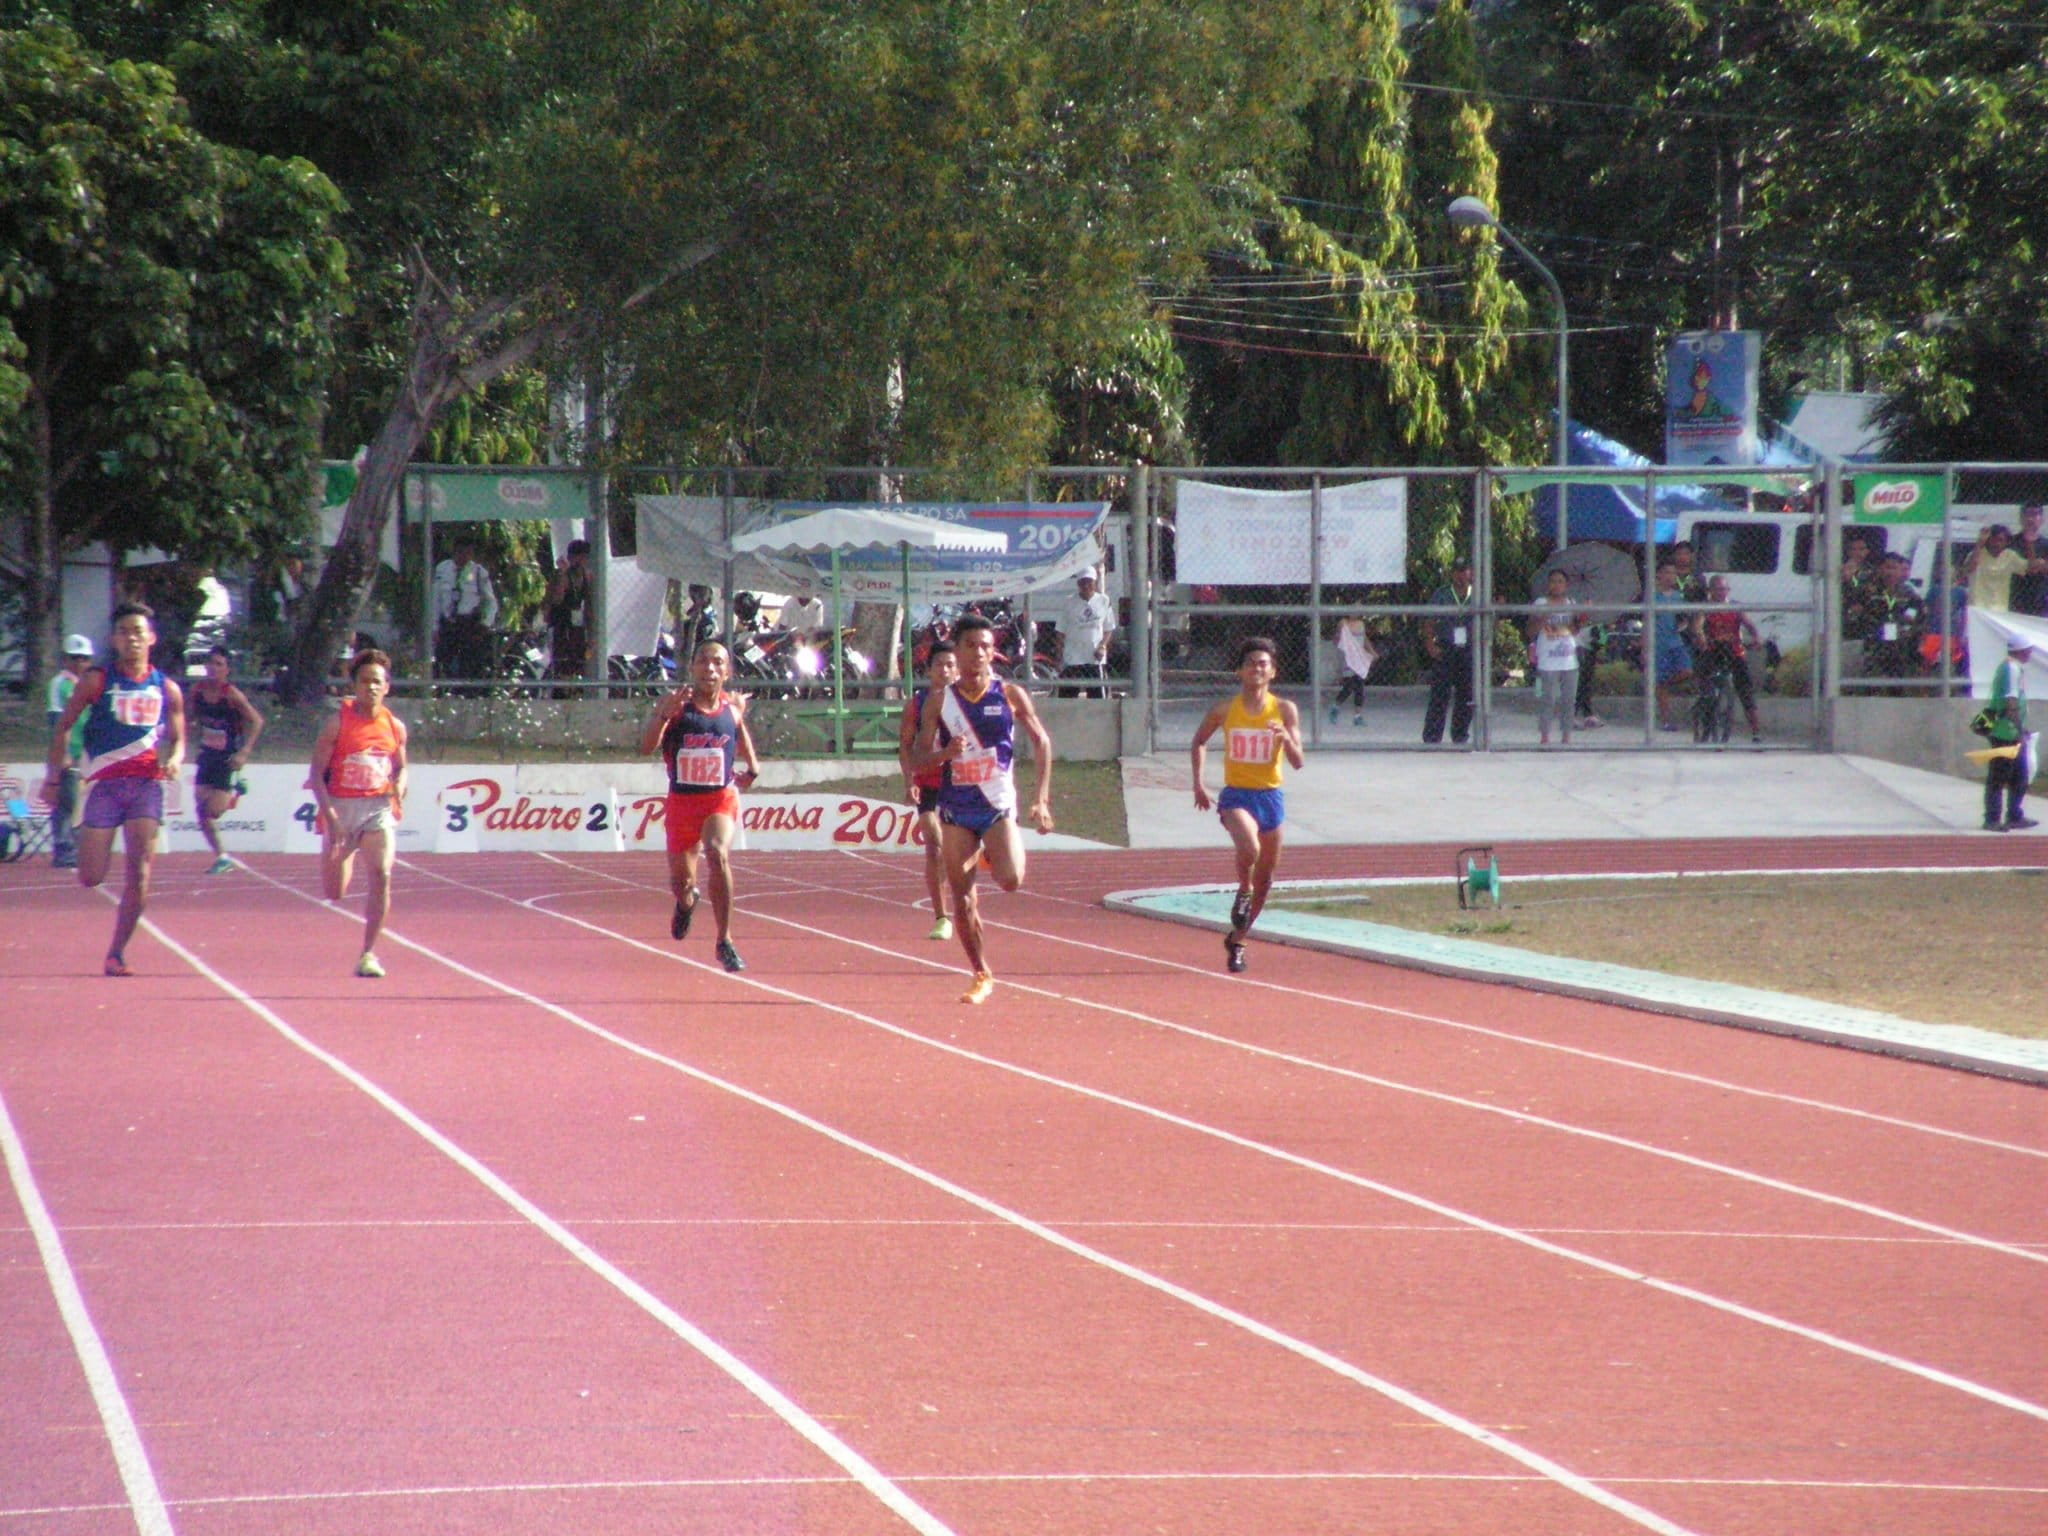 Alejandro and Sulleza face to face in the 400m